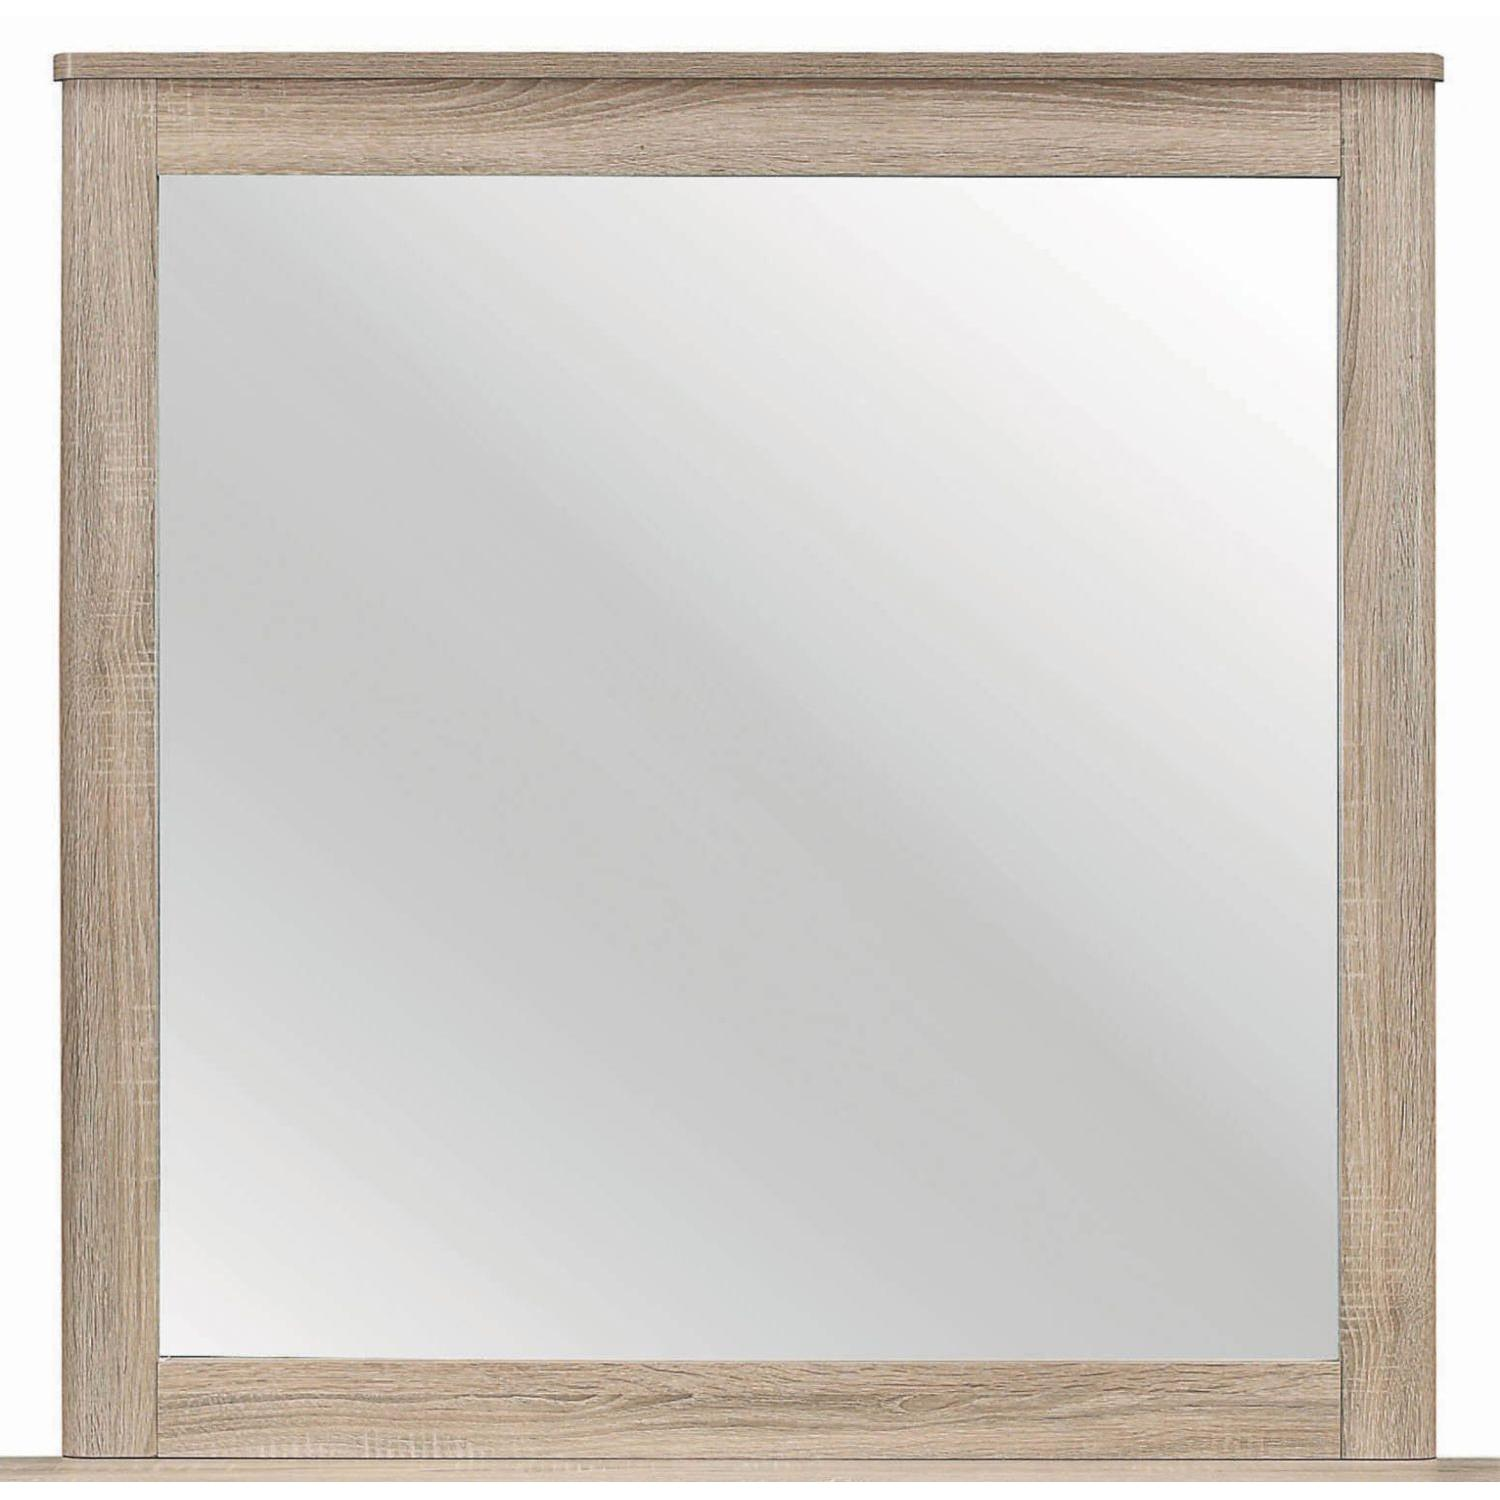 Mirror w/ Natural Finish Frame - image-0